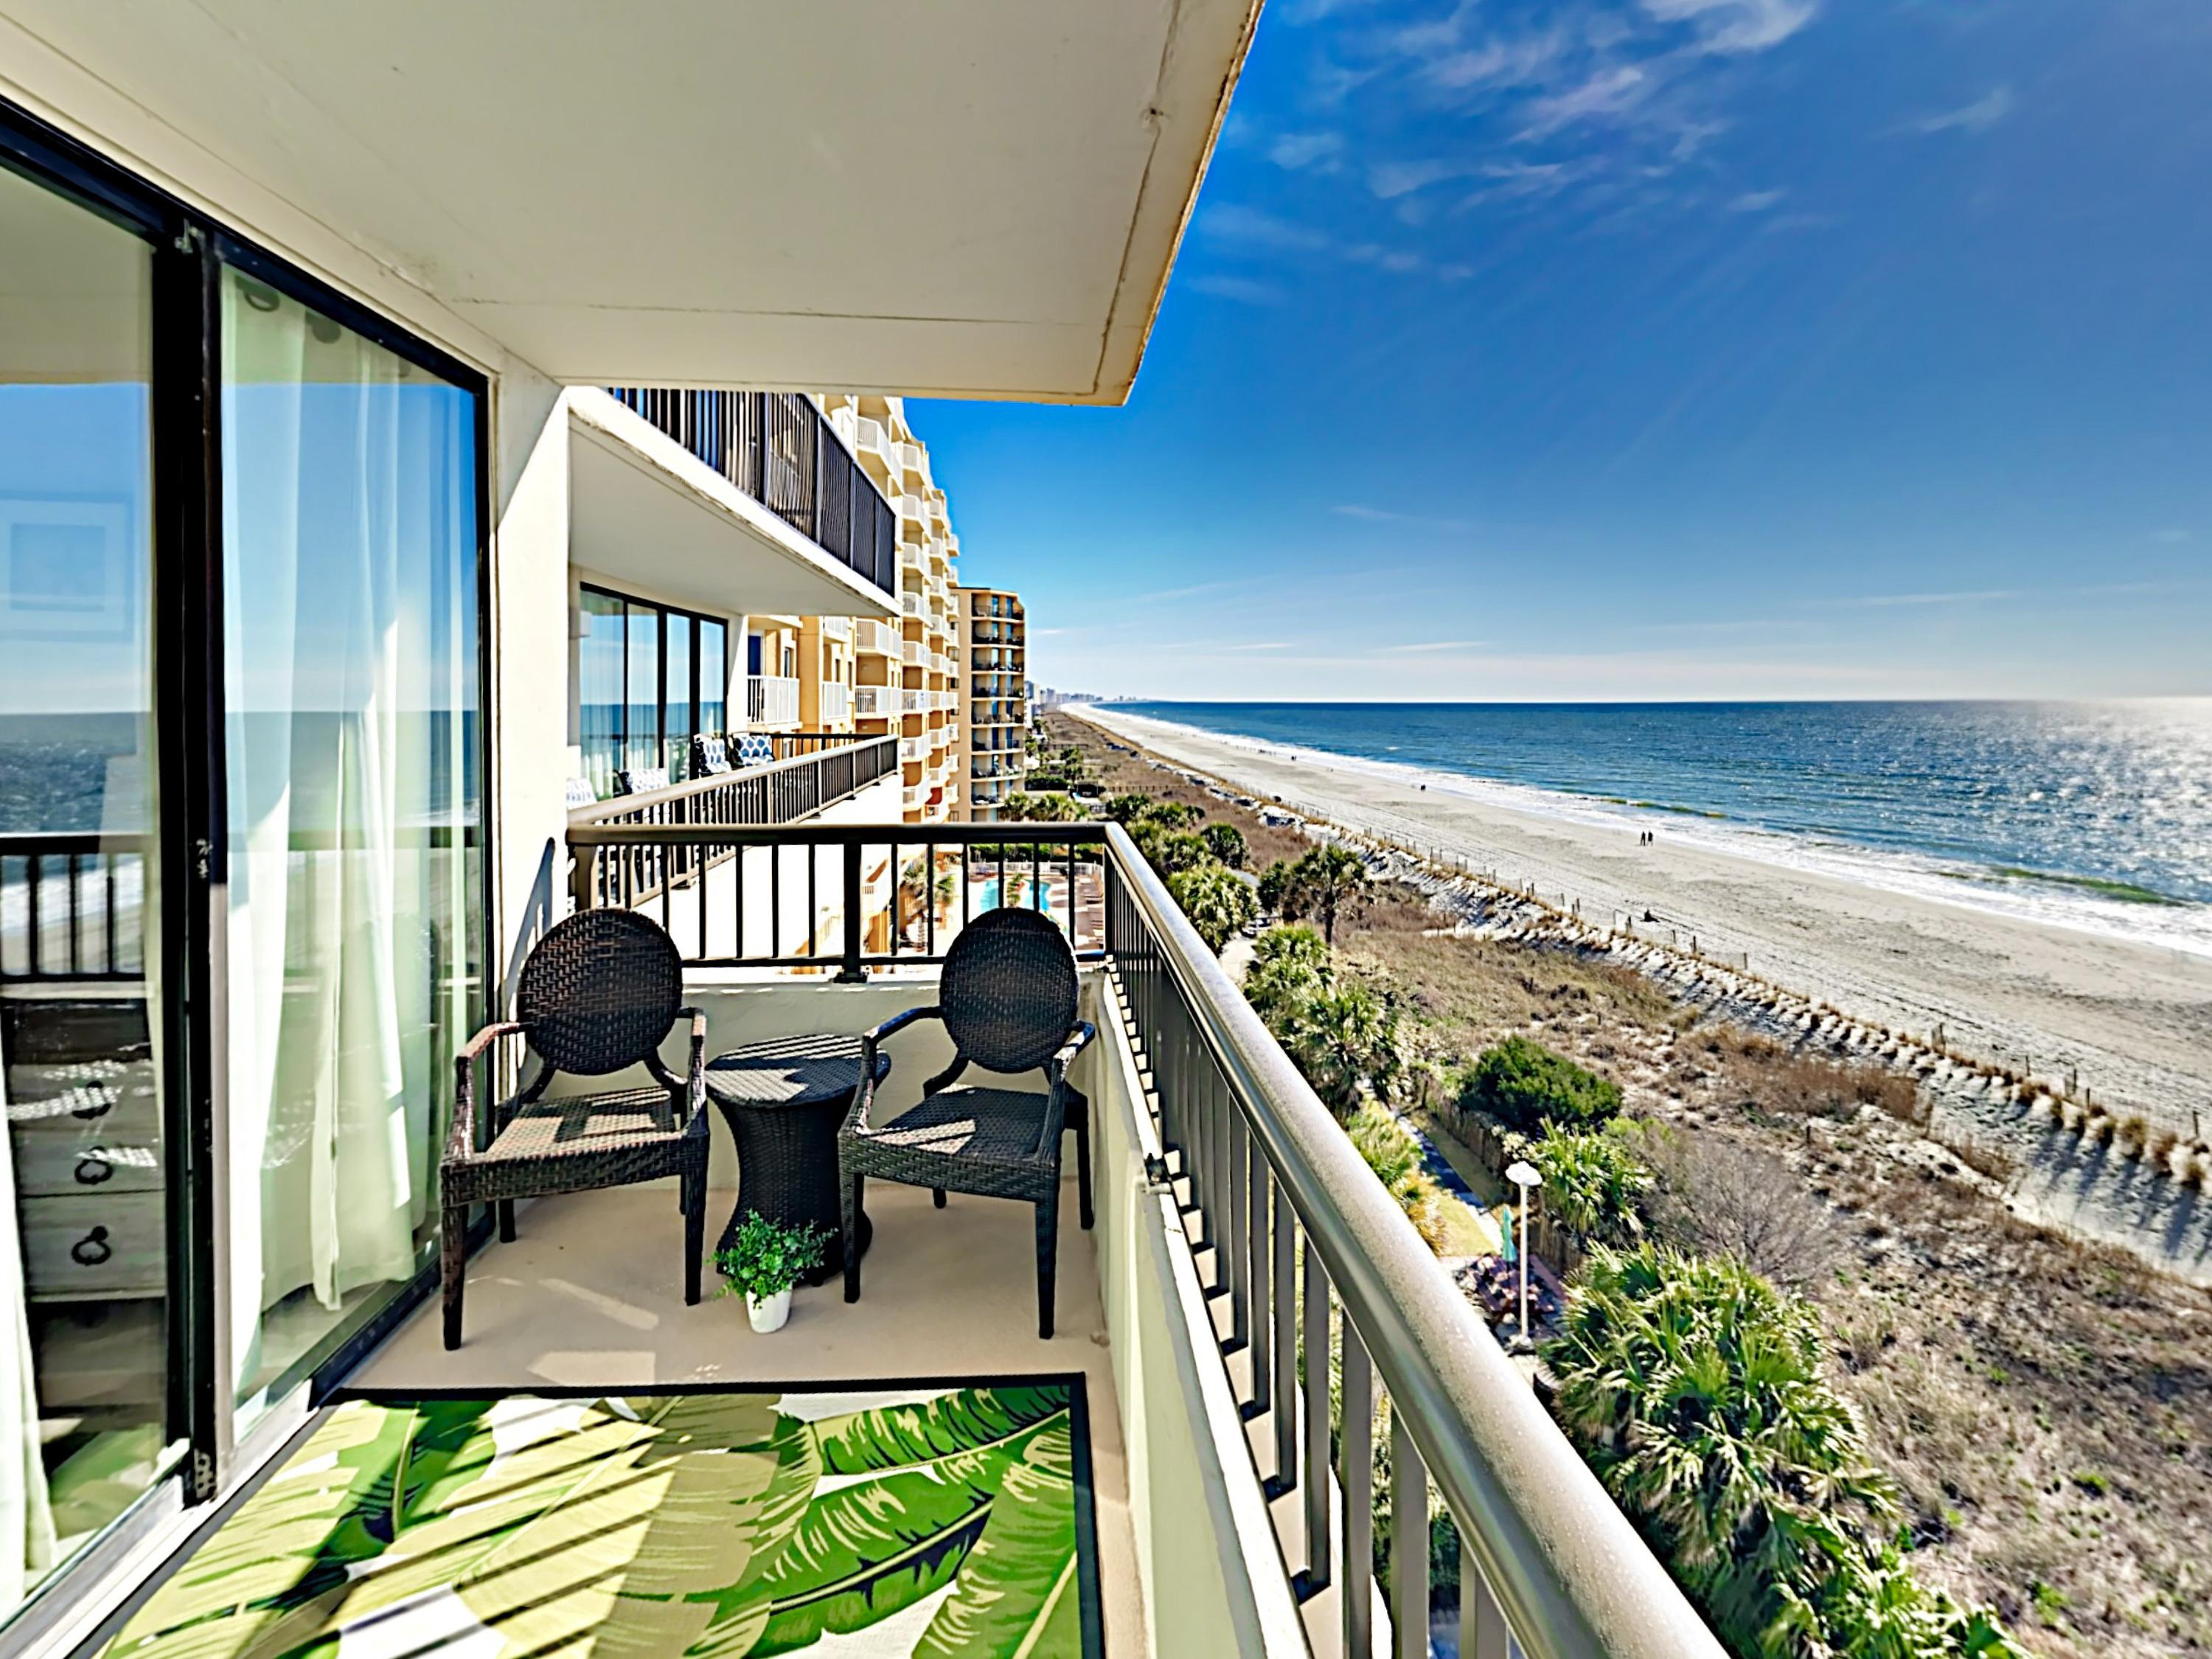 Welcome to Myrtle Beach! Your rental is professionally managed by TurnKey Vacation Rentals.